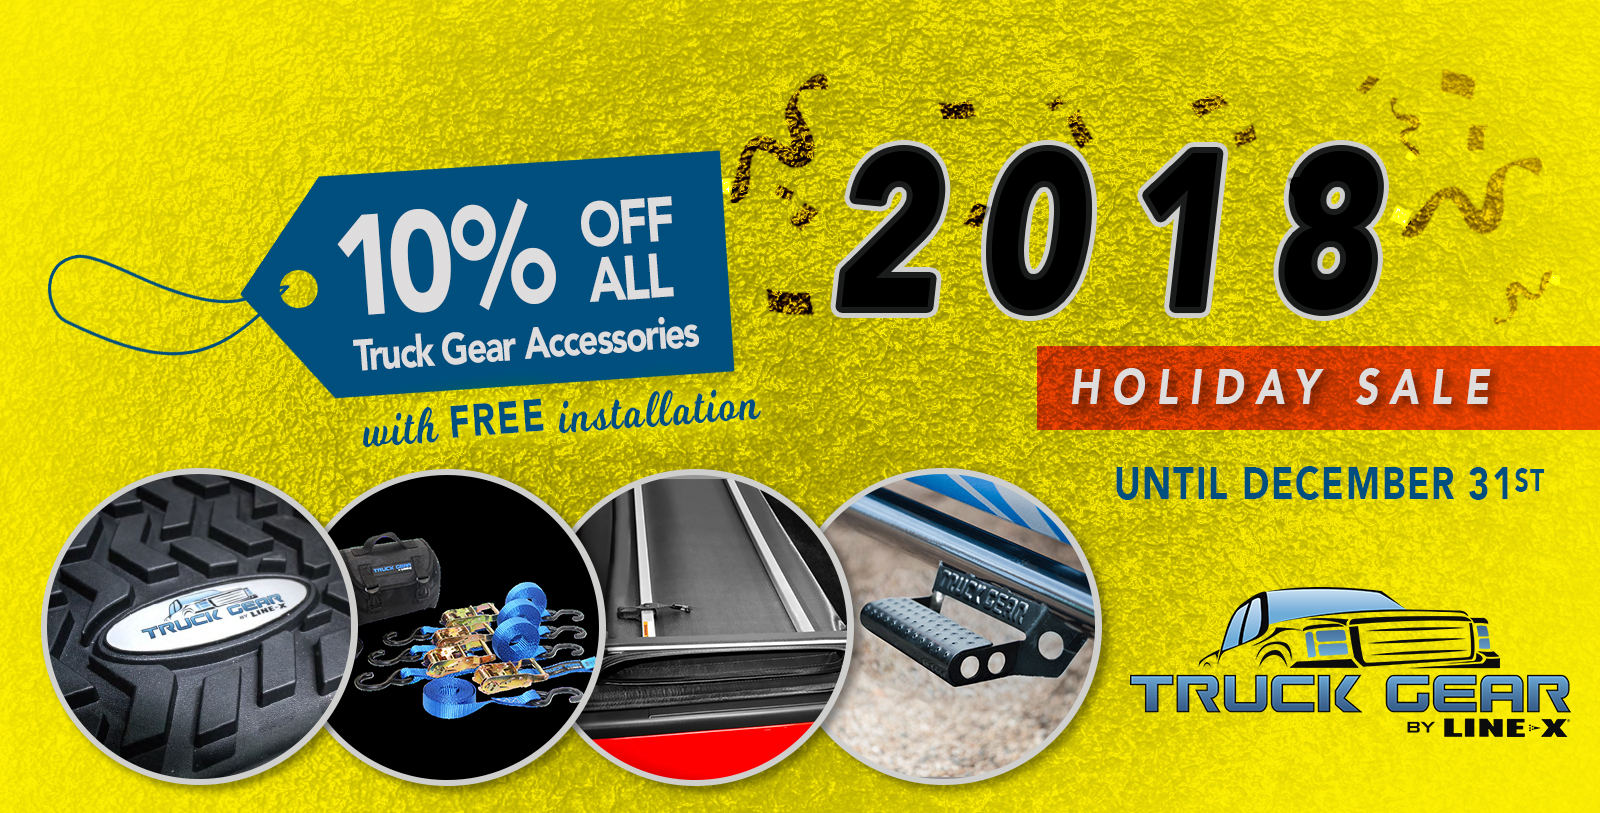 Holiday Sale: 10% Off ALL Truck Gear Accessories with FREE Installation